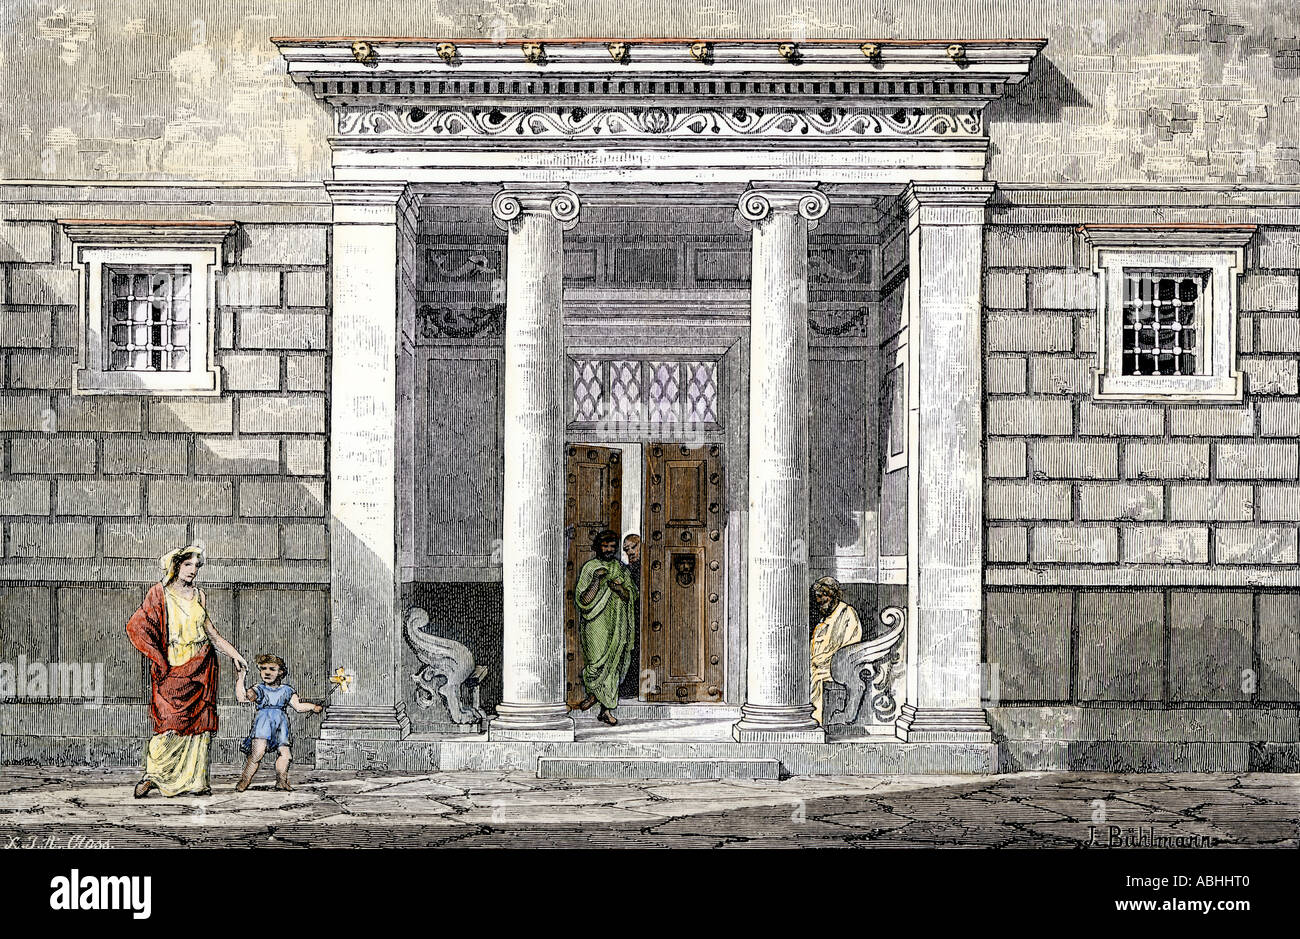 Entrance to a well to do home in ancient Greece. Hand-colored woodcut - Stock Image